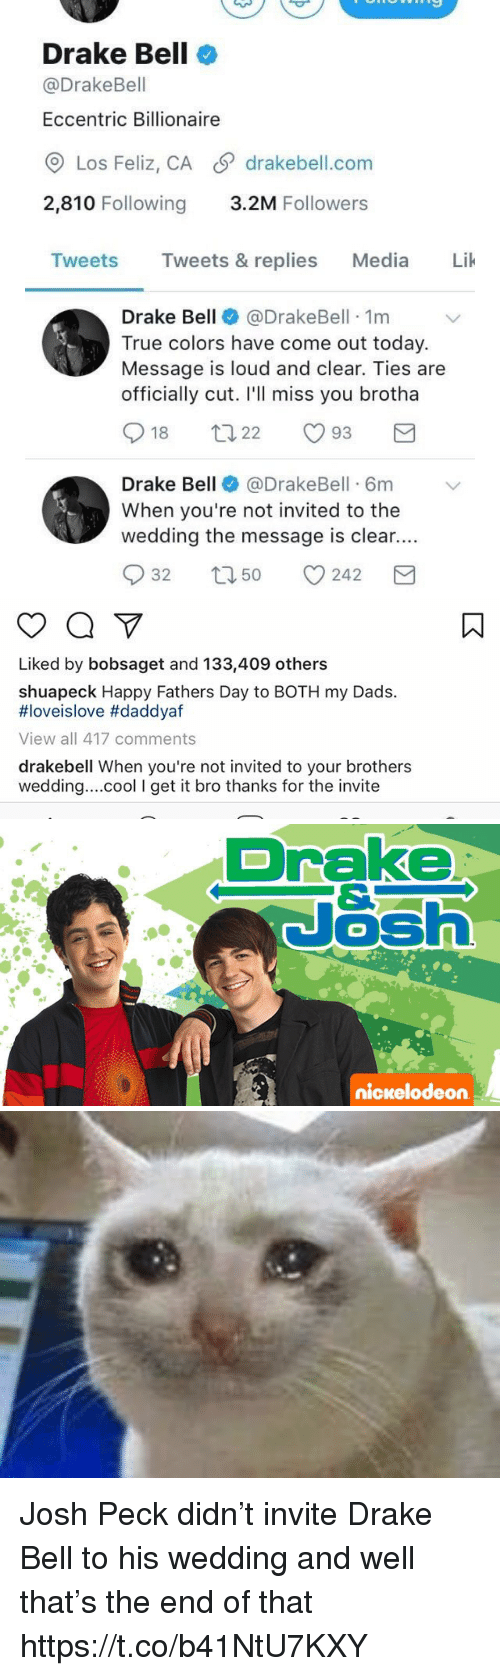 Drake, Drake Bell, and Fathers Day: Drake Bell  @Drake Bell  Eccentric Billionaire  Los Feliz, CA S drakebell.com  2,810 Following  3.2M Followers  Tweets  Tweets & replies  Media  Lik  Drake Bell  @Drake Bell 1m  True colors have come out today.  Message is loud and clear. Ties are  officially cut. I'll miss you brotha  S 18  93  22  Drake Bell  @DrakeBell 6m v  When you're not invited to the  wedding the message is clear.  S 32 t 50  242  M   Liked by bobsaget and 133,409 others  shuapeck Happy Fathers Day to BOTH my Dads.  HIoveislove #daddyaf  View all 417 comments  drakebell When you're not invited to your brothers  wedding... cool l get it  bro thanks for the invite   Drake  Nash  nickelodeon Josh Peck didn't invite Drake Bell to his wedding and well that's the end of that https://t.co/b41NtU7KXY